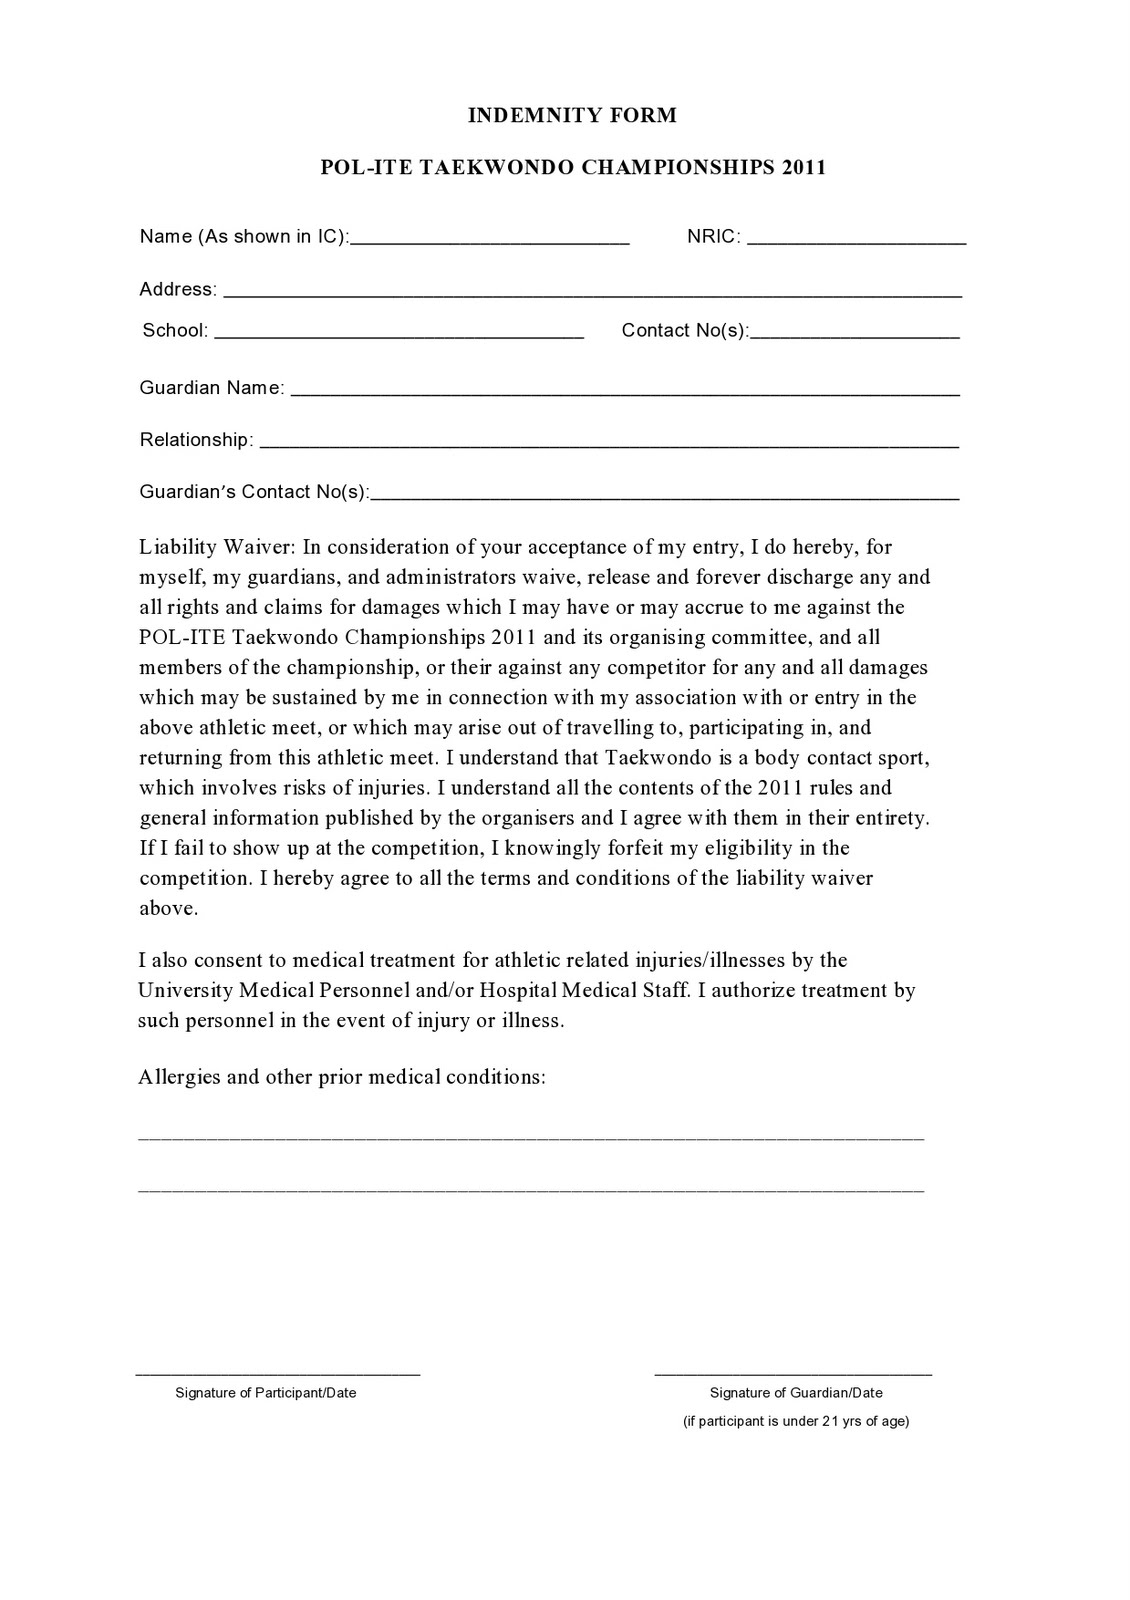 Indemnity Form Free Printable Documents